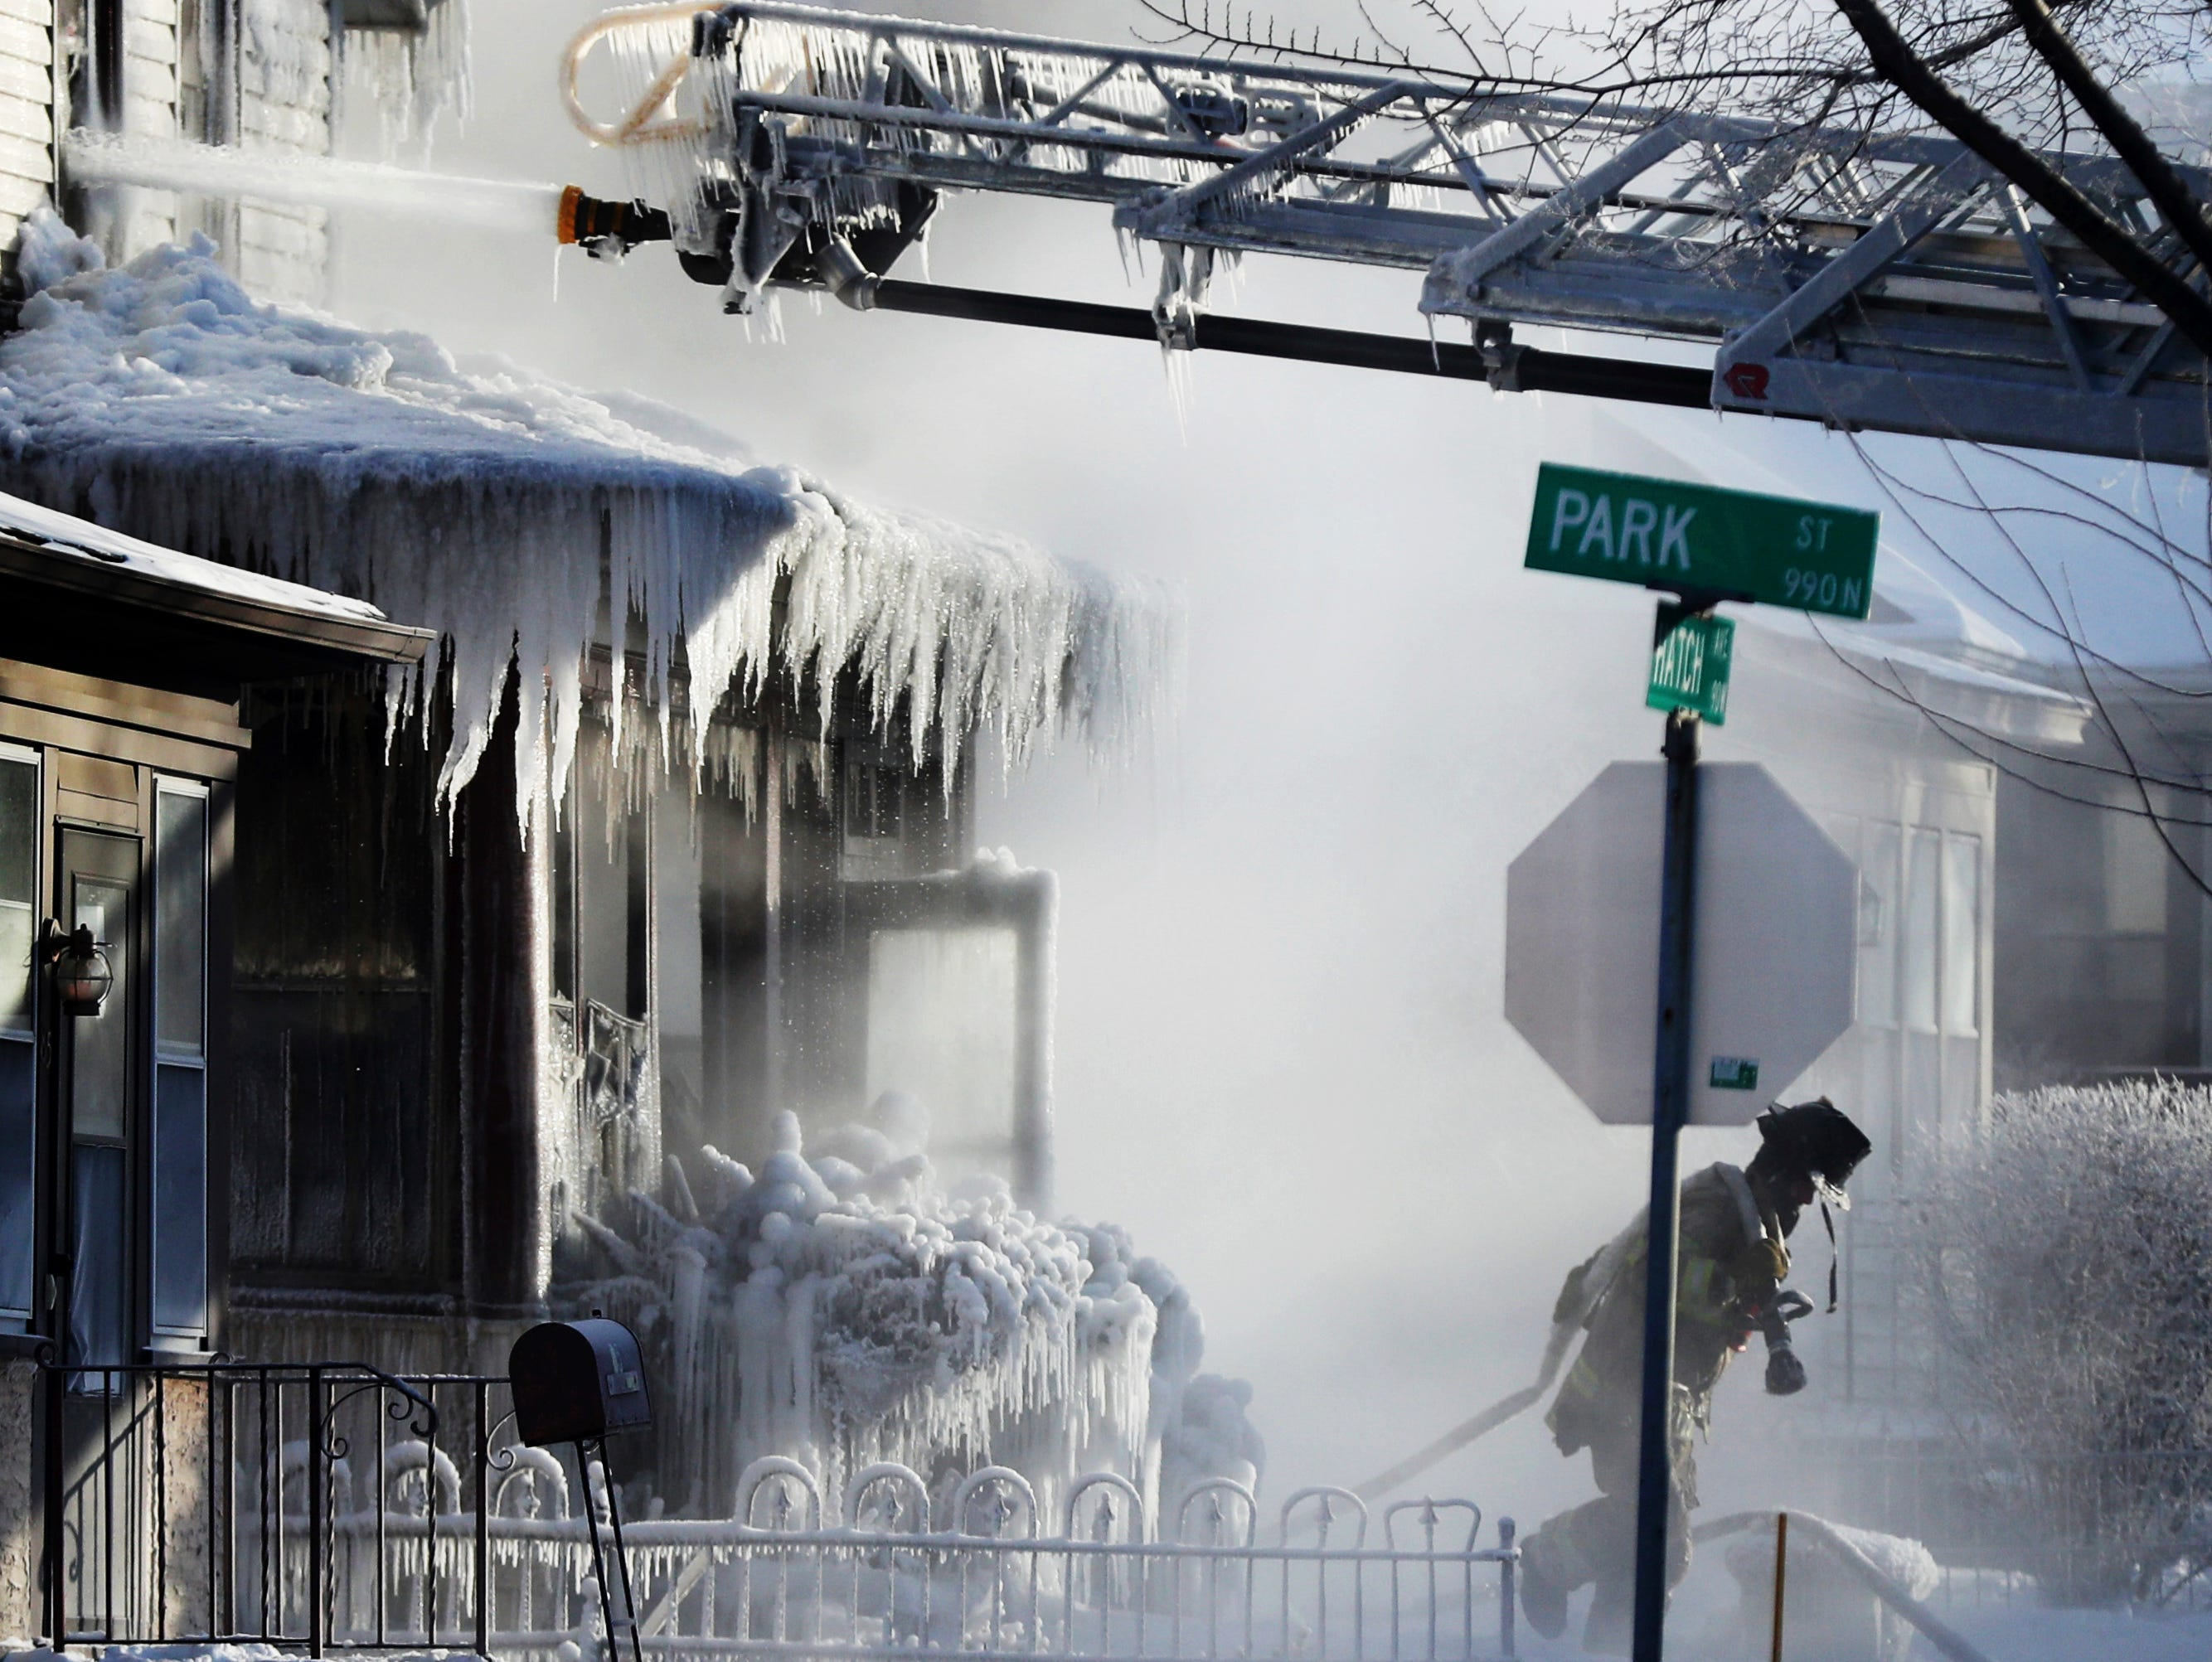 St. Paul firefighters at the scene of a house fire during an arctic deep freeze on Wednesday, Jan. 30, 2019, In St. Paul, Minn.